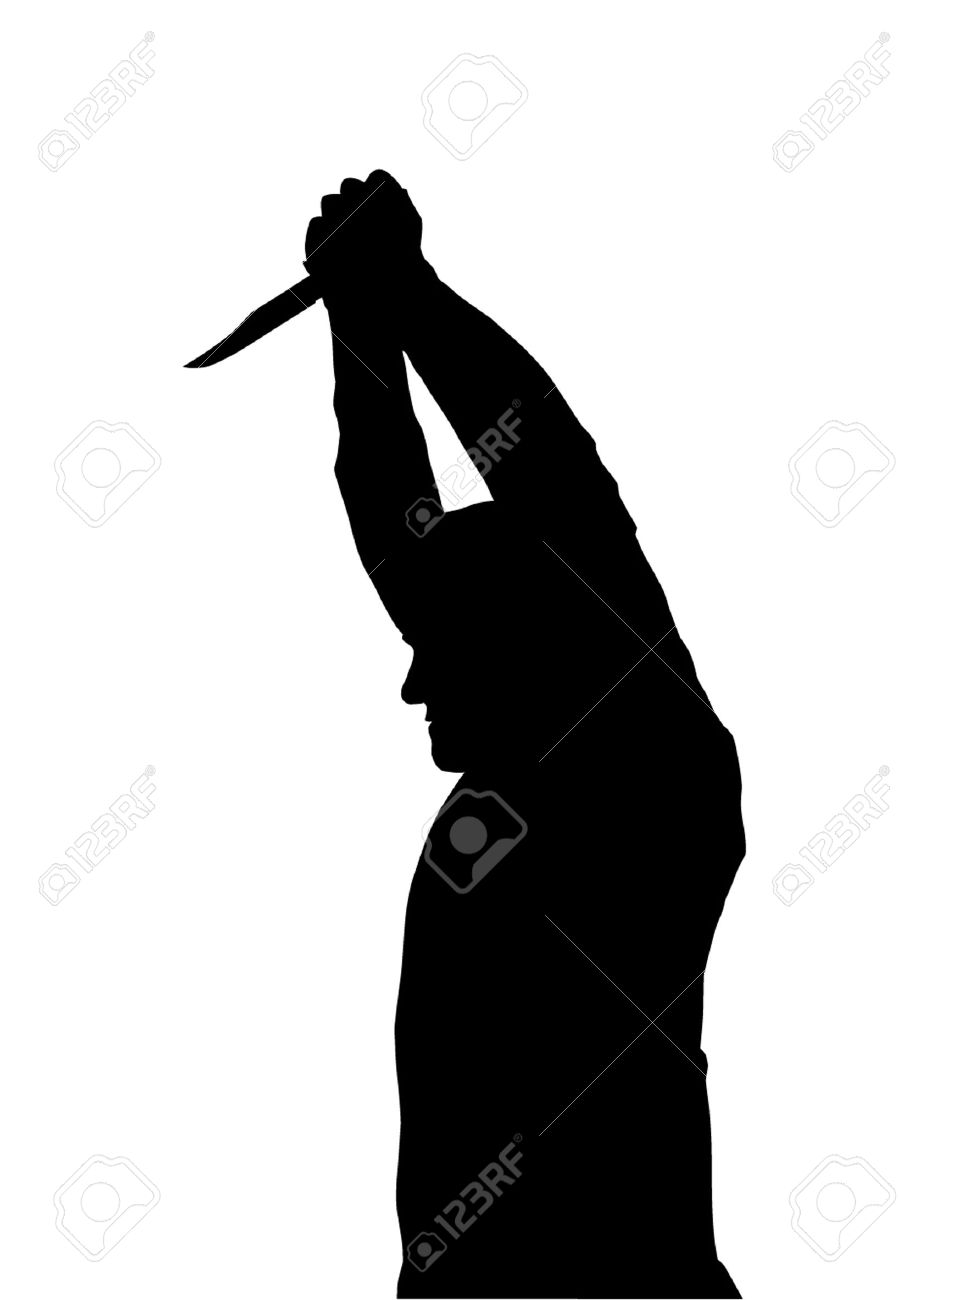 Man with knife black and white clipart.